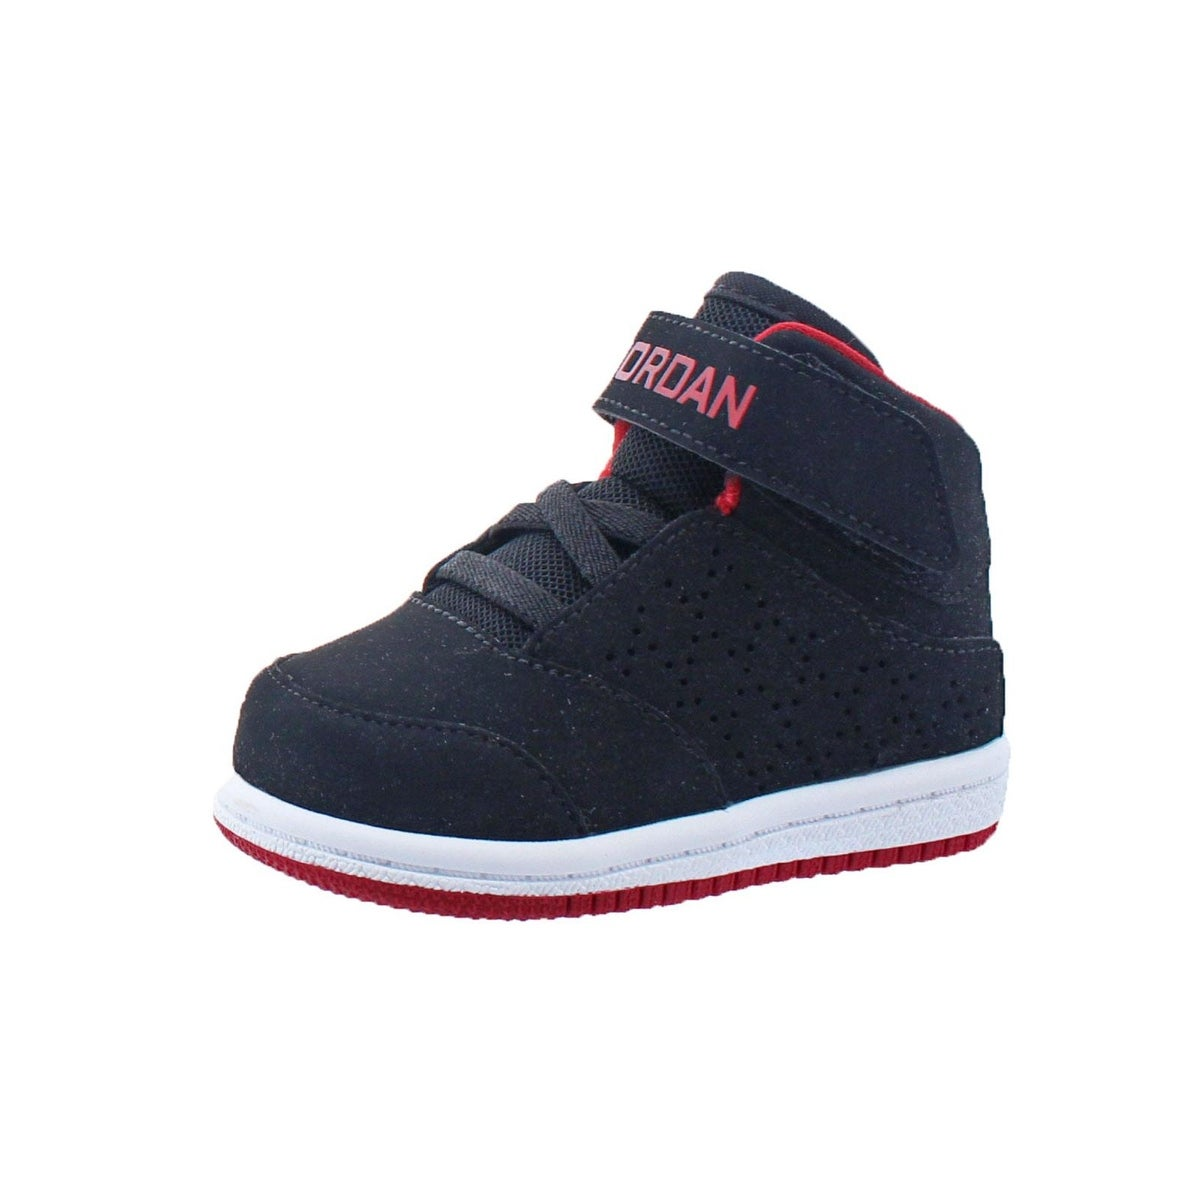 brand new dc8f8 5e3e4 Shop Jordan Boys 1 Flight 5 Prem Fashion Sneakers Perforated High-Top - 4  medium (d) toddler - Free Shipping On Orders Over  45 - Overstock - 22311746